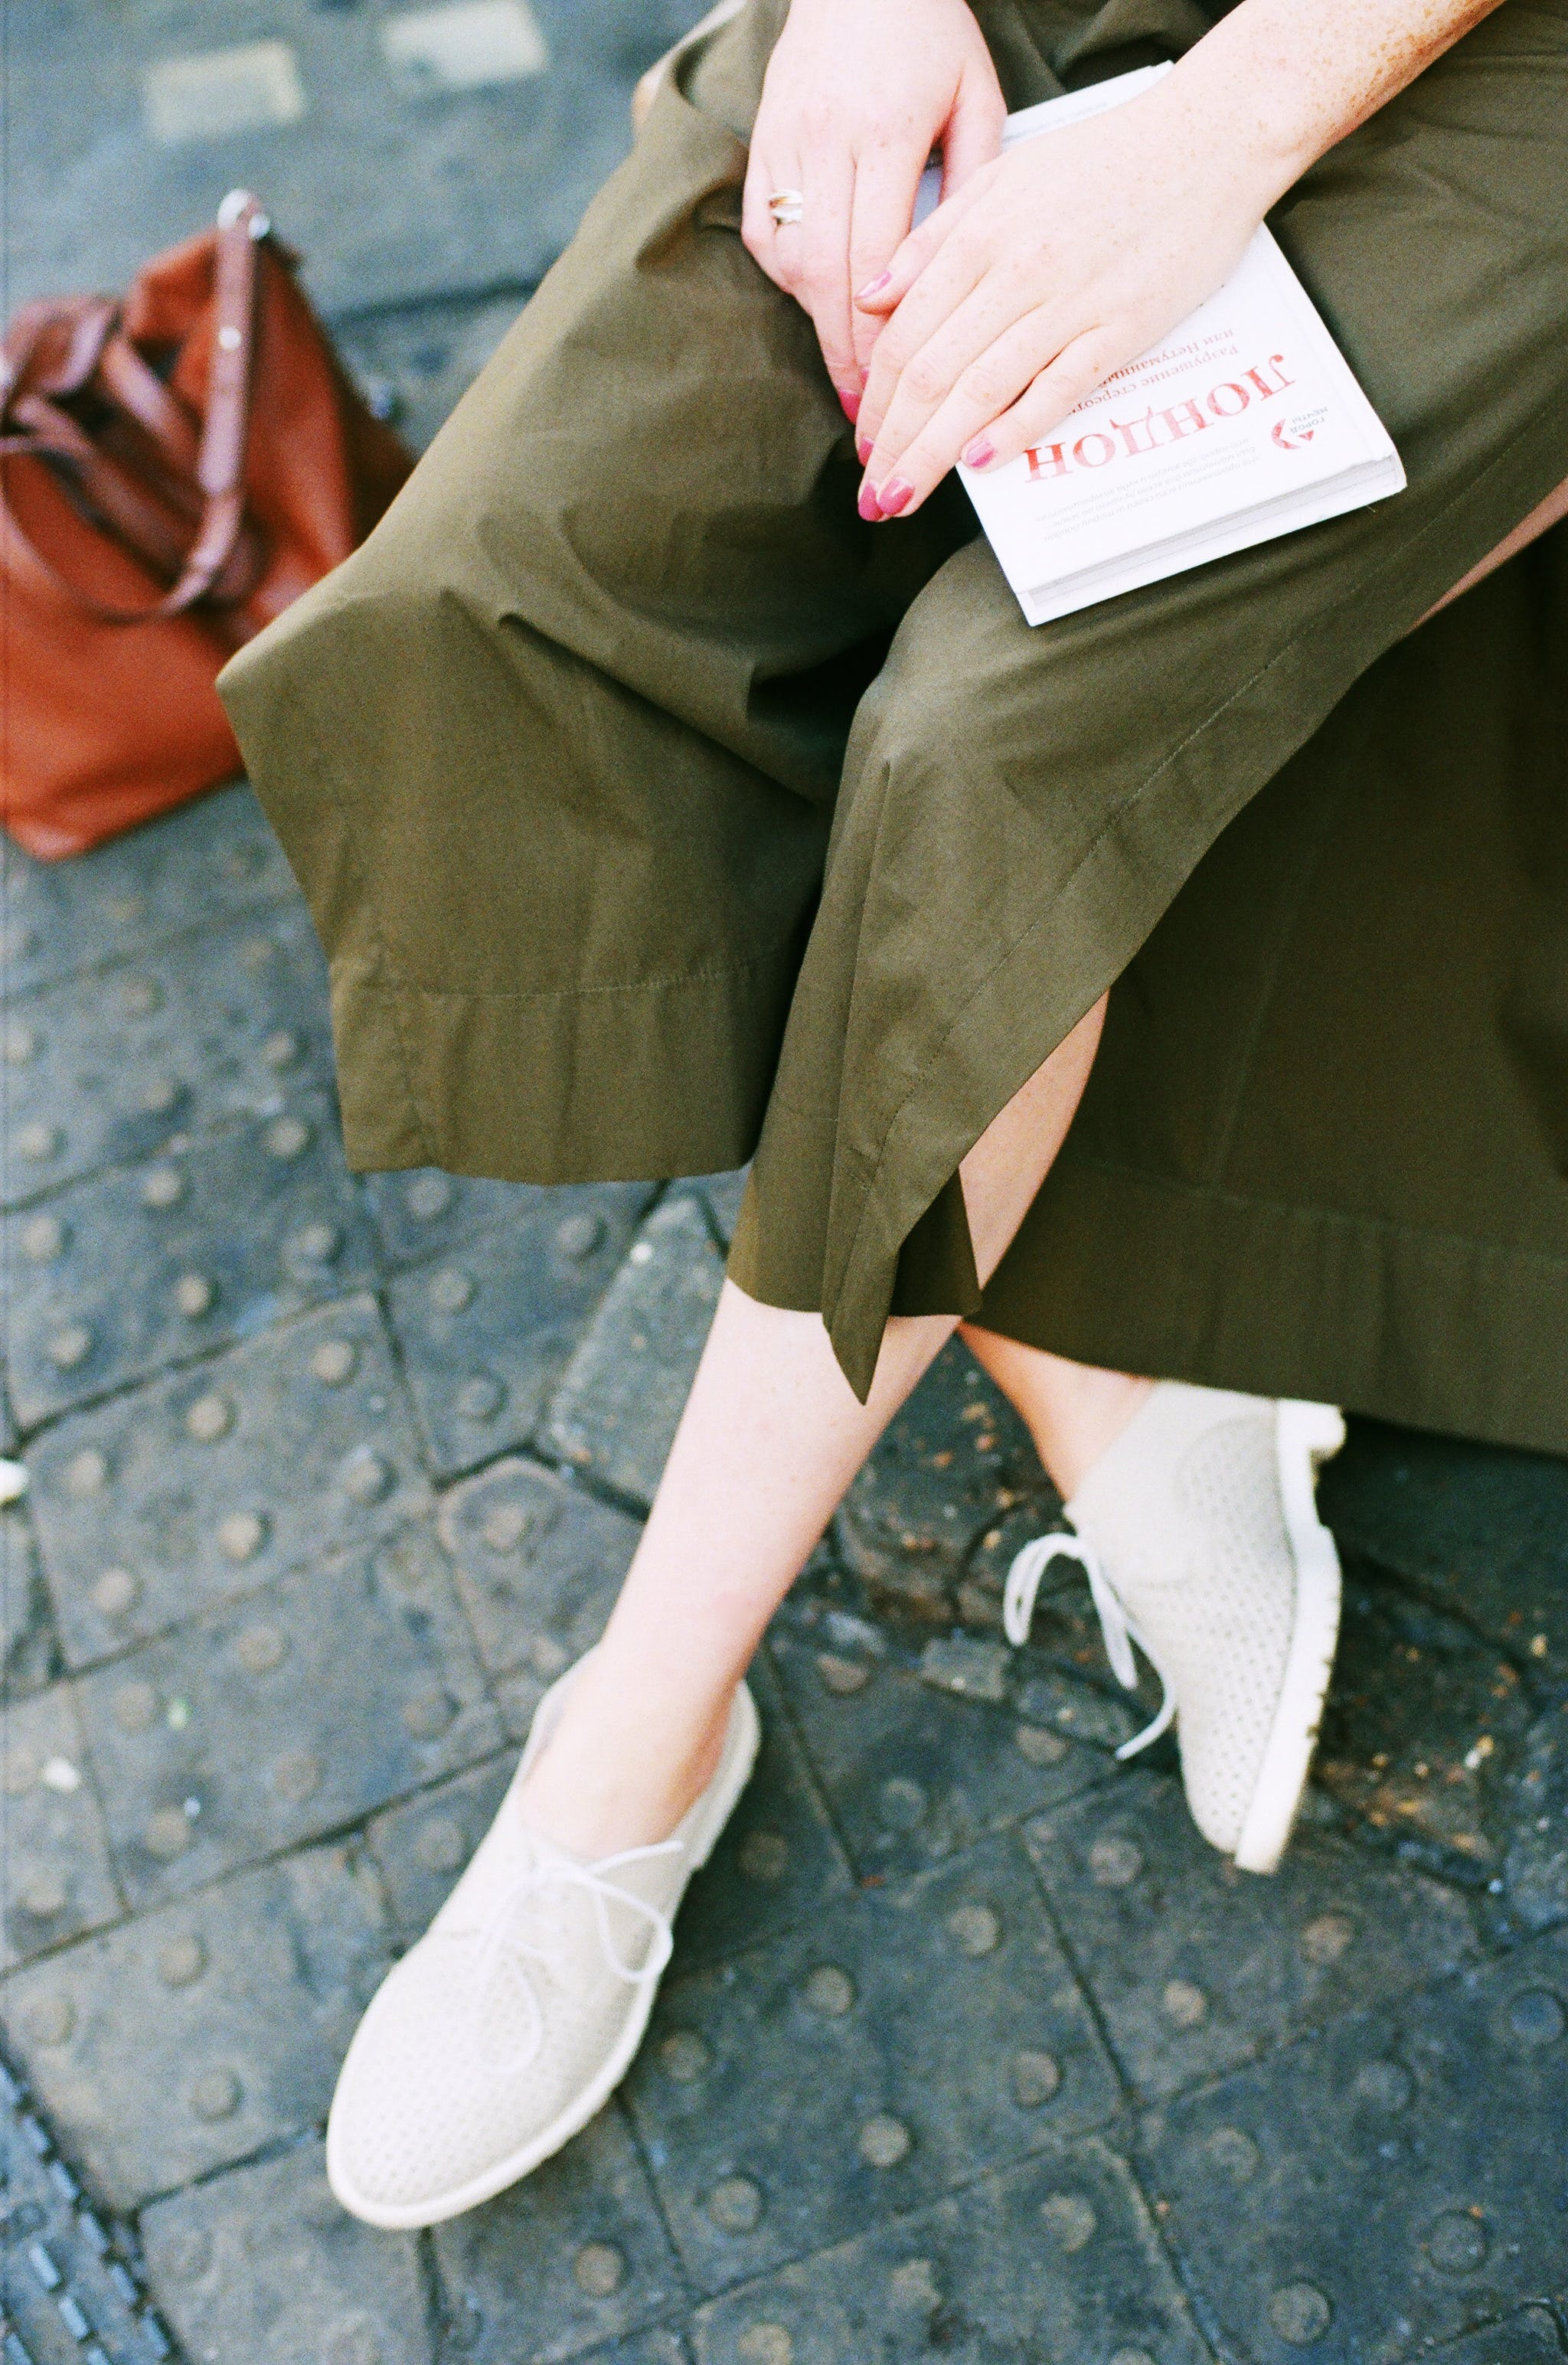 Person Wearing Green Skirt and Pair of White Low Top Sneakers